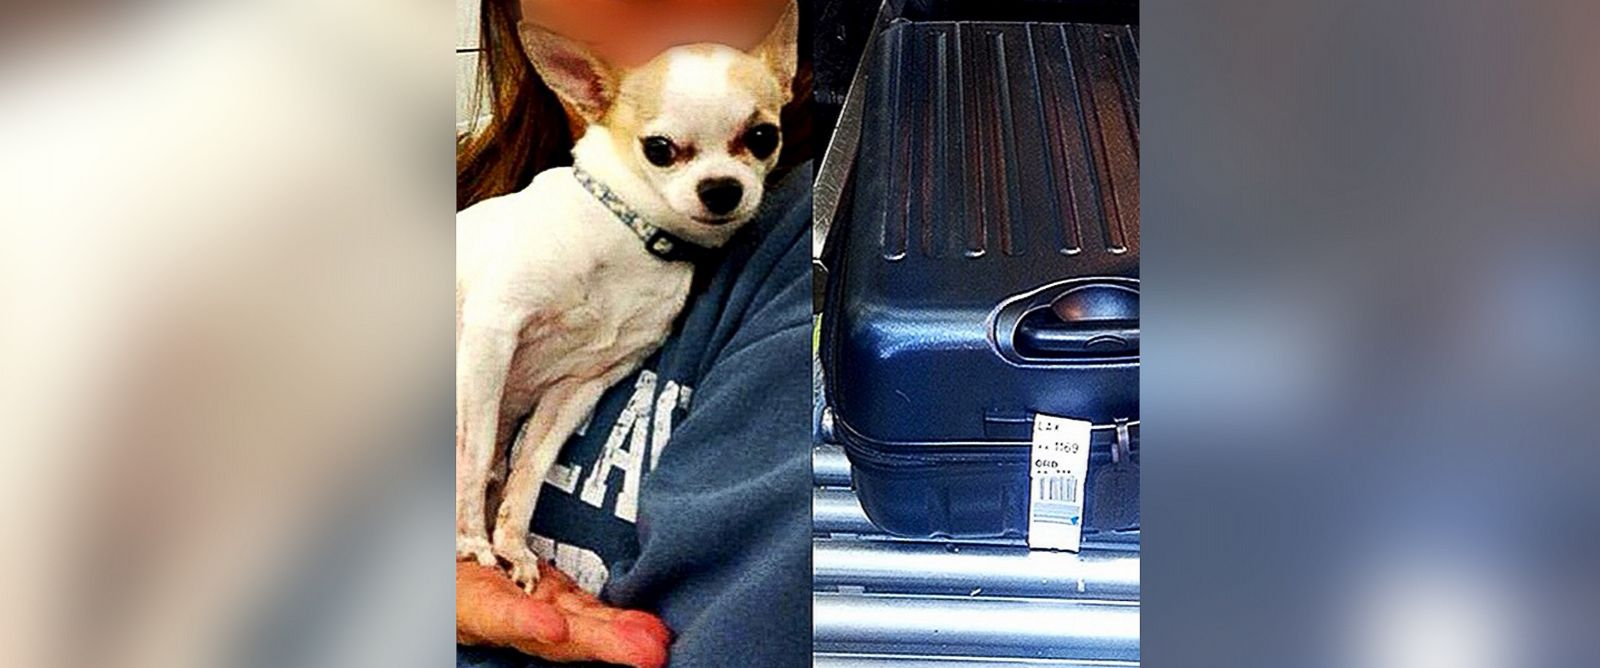 PHOTO: The TSA found a dog inside a suitcase at LaGuardia Airport this week.